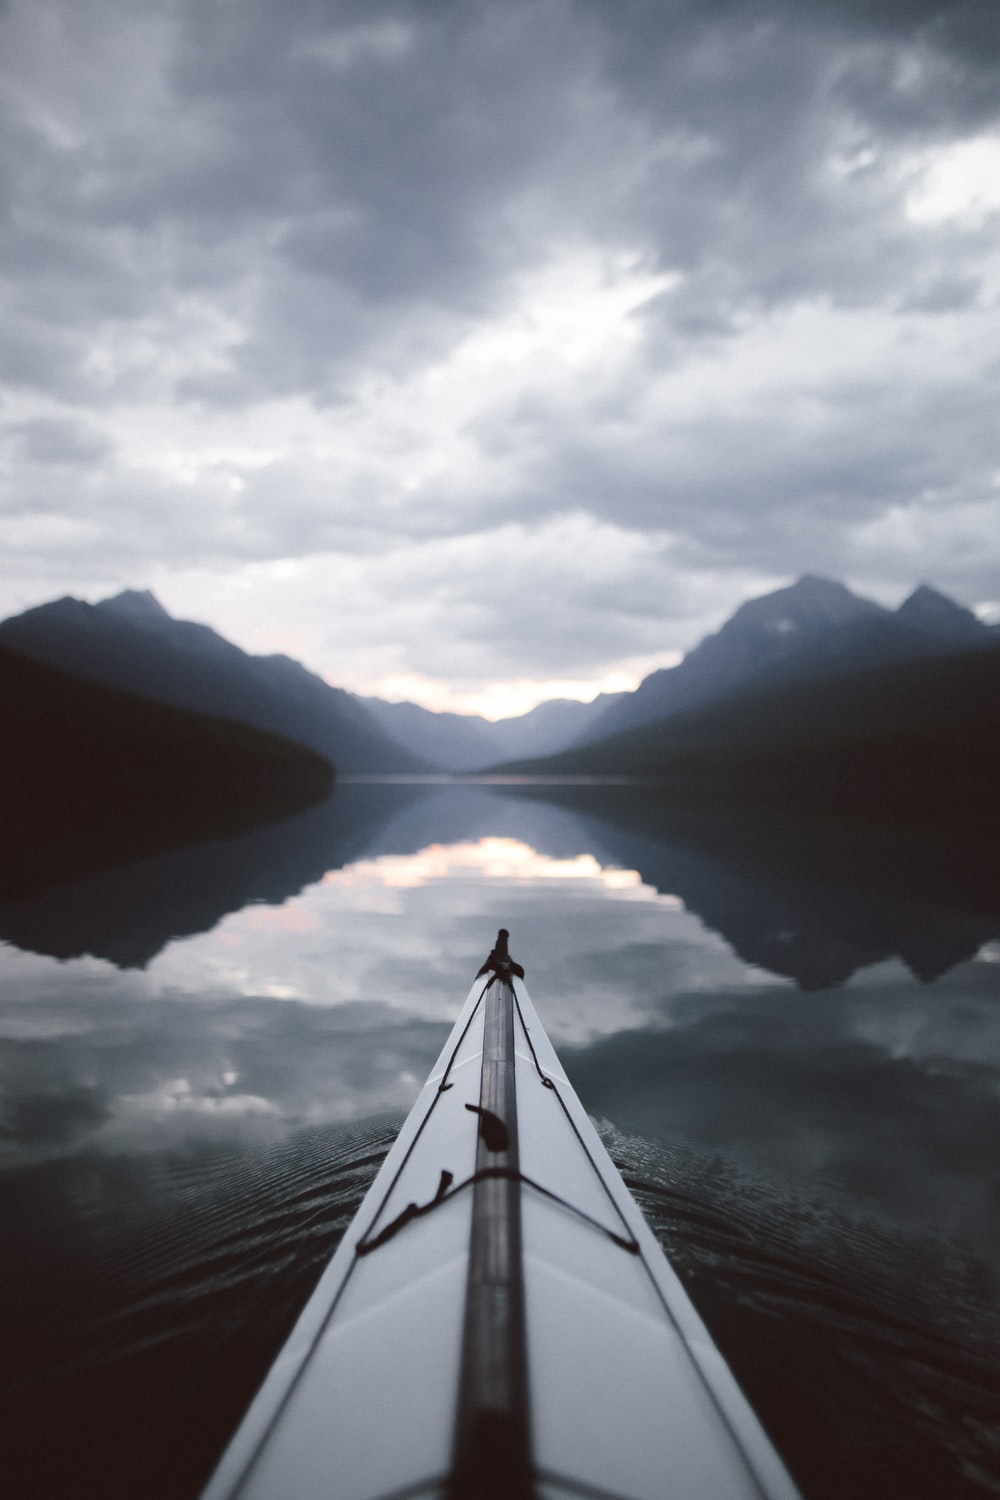 grayscale photo of body of water and mountains